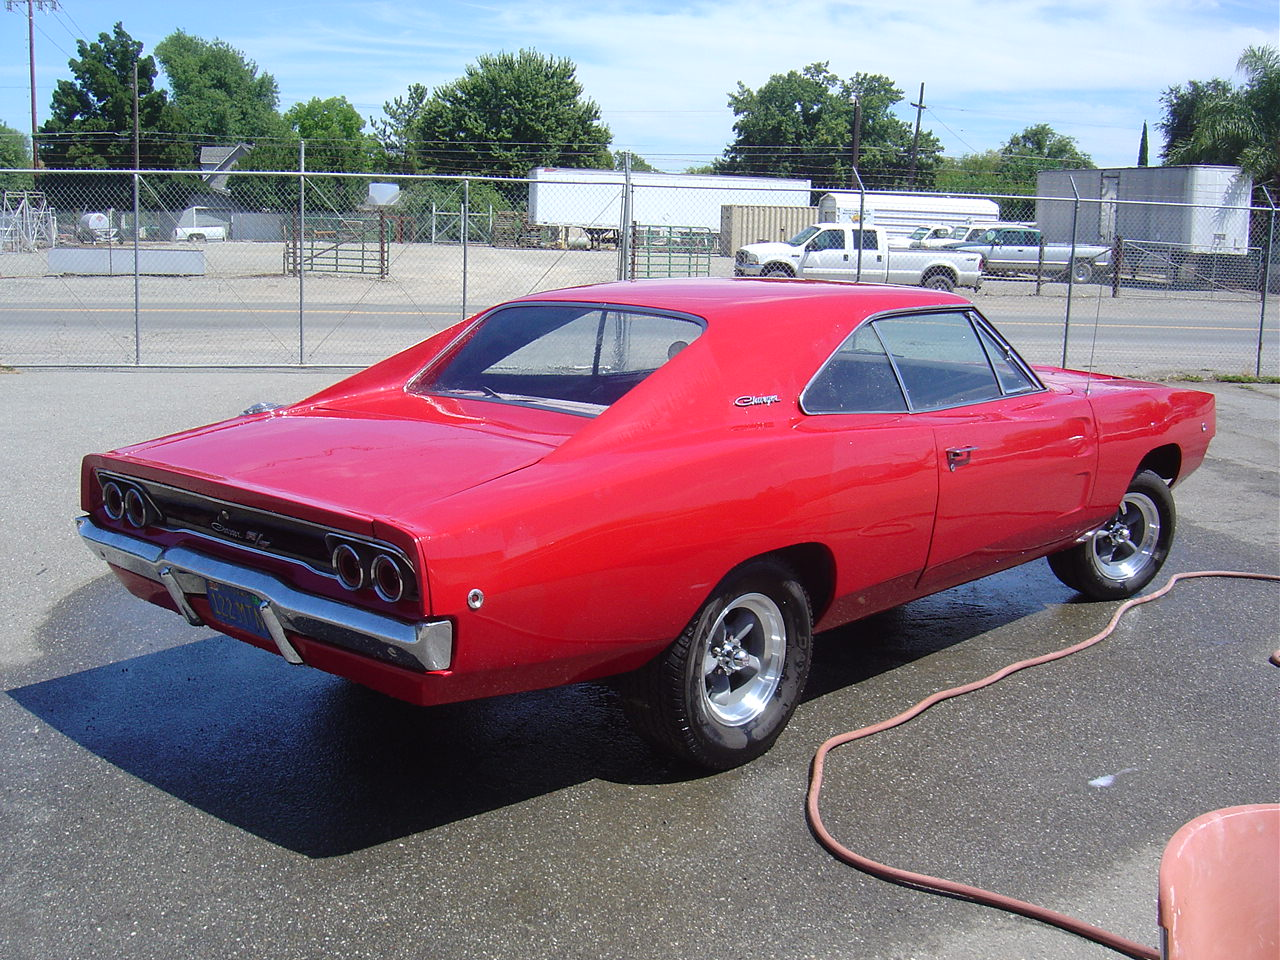 68 charger rt for sale 68 charger rt for sale. Cars Review. Best American Auto & Cars Review